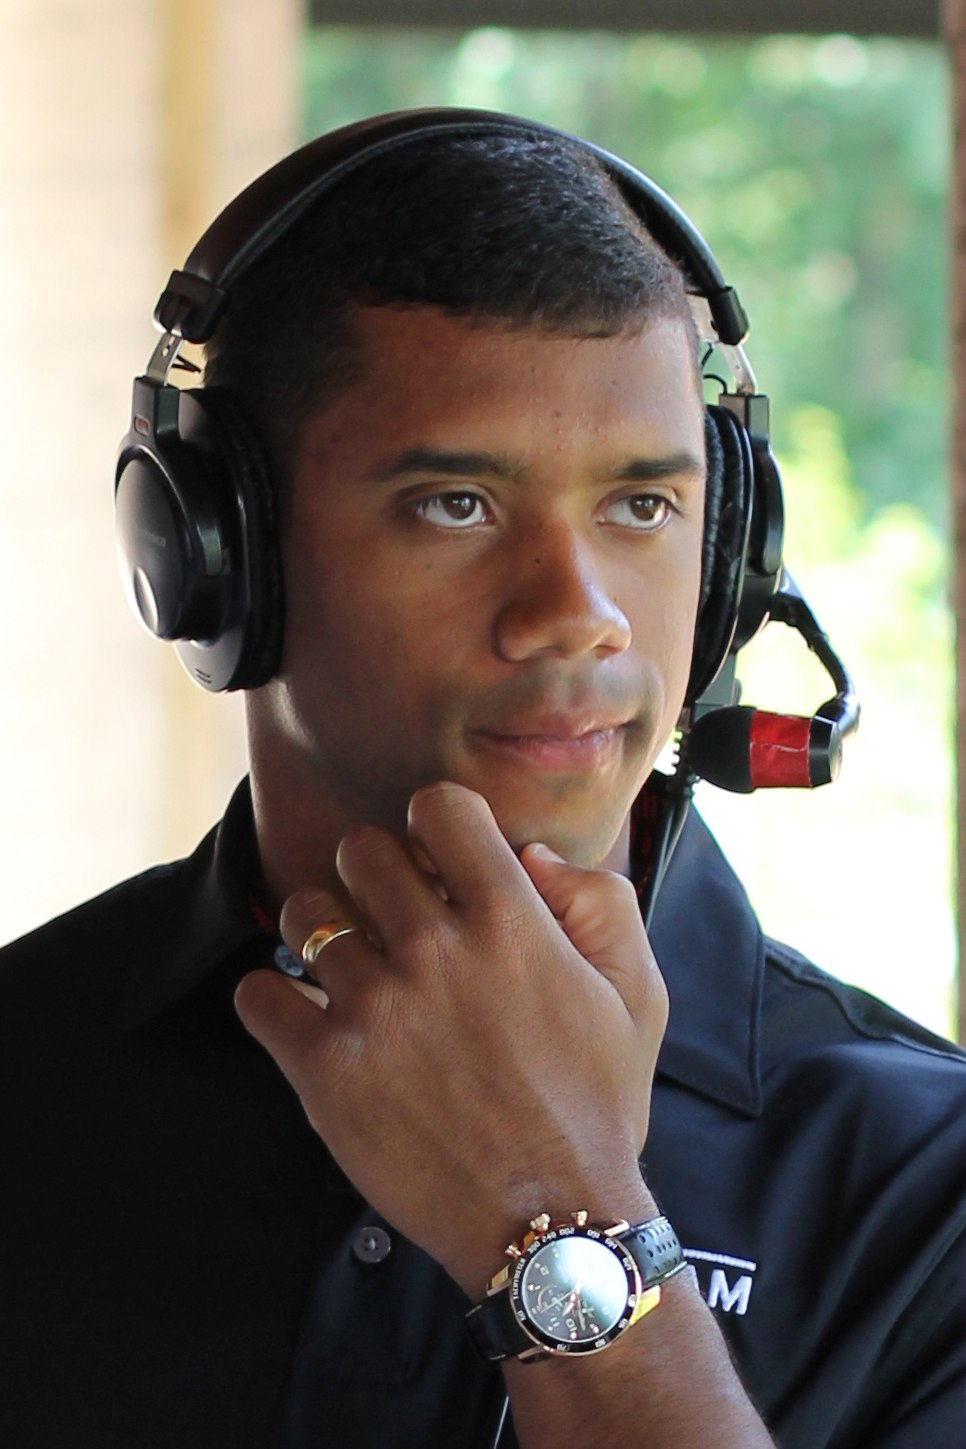 Russell Wilson at the 2013 Jessie Vetter Classic, July 1, 2013